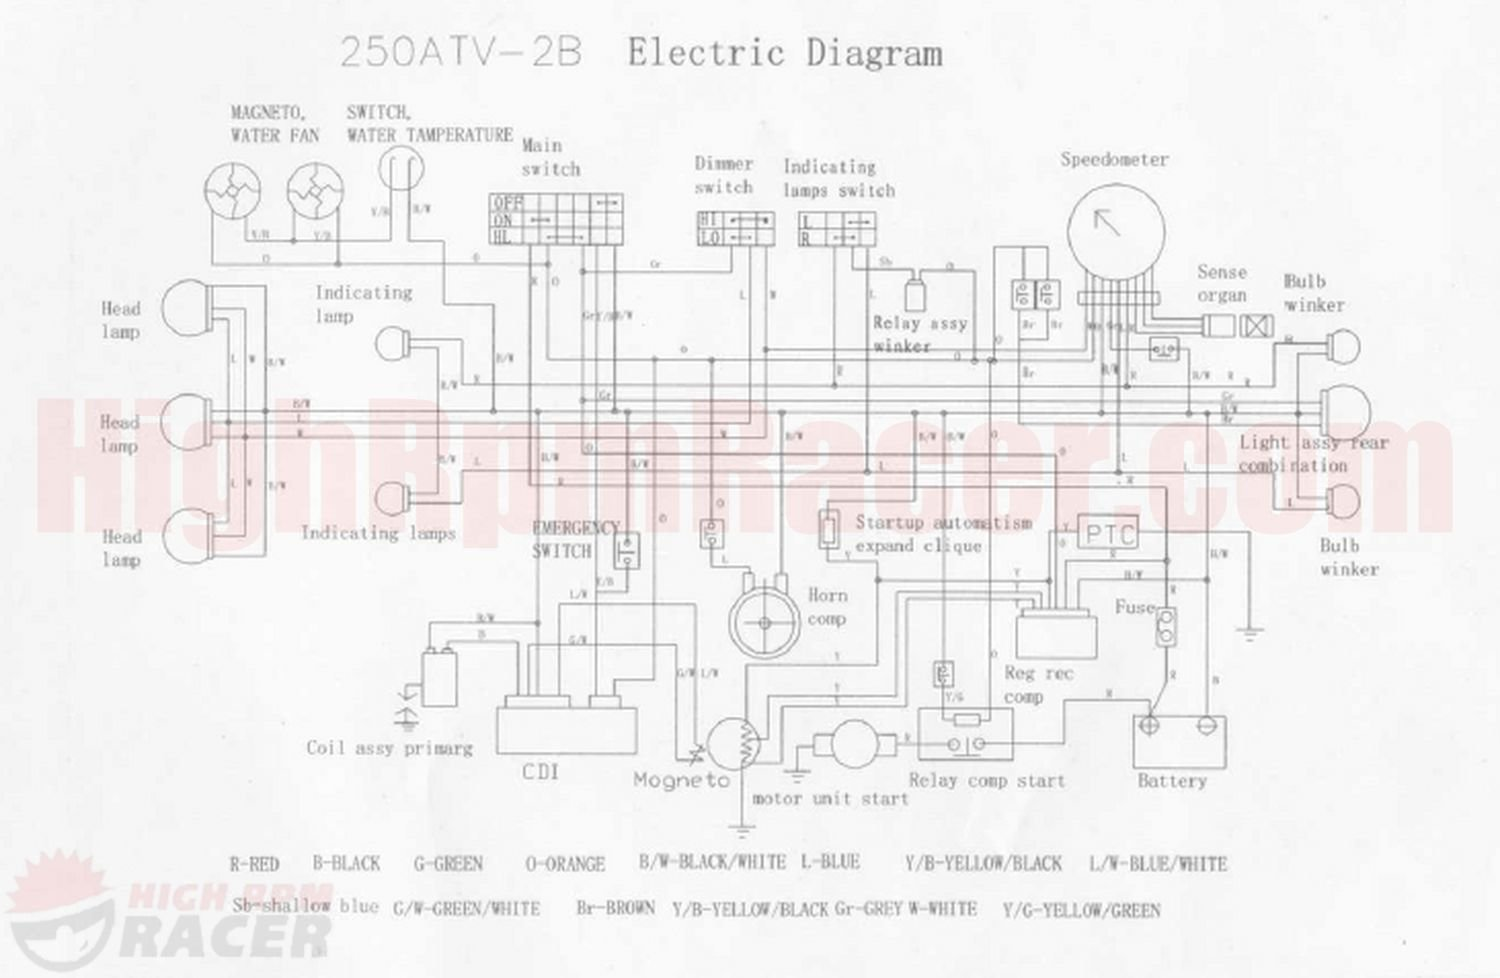 roketa250_wd roketa atv 250 wiring diagram $0 00 coolster atv wiring diagram at soozxer.org